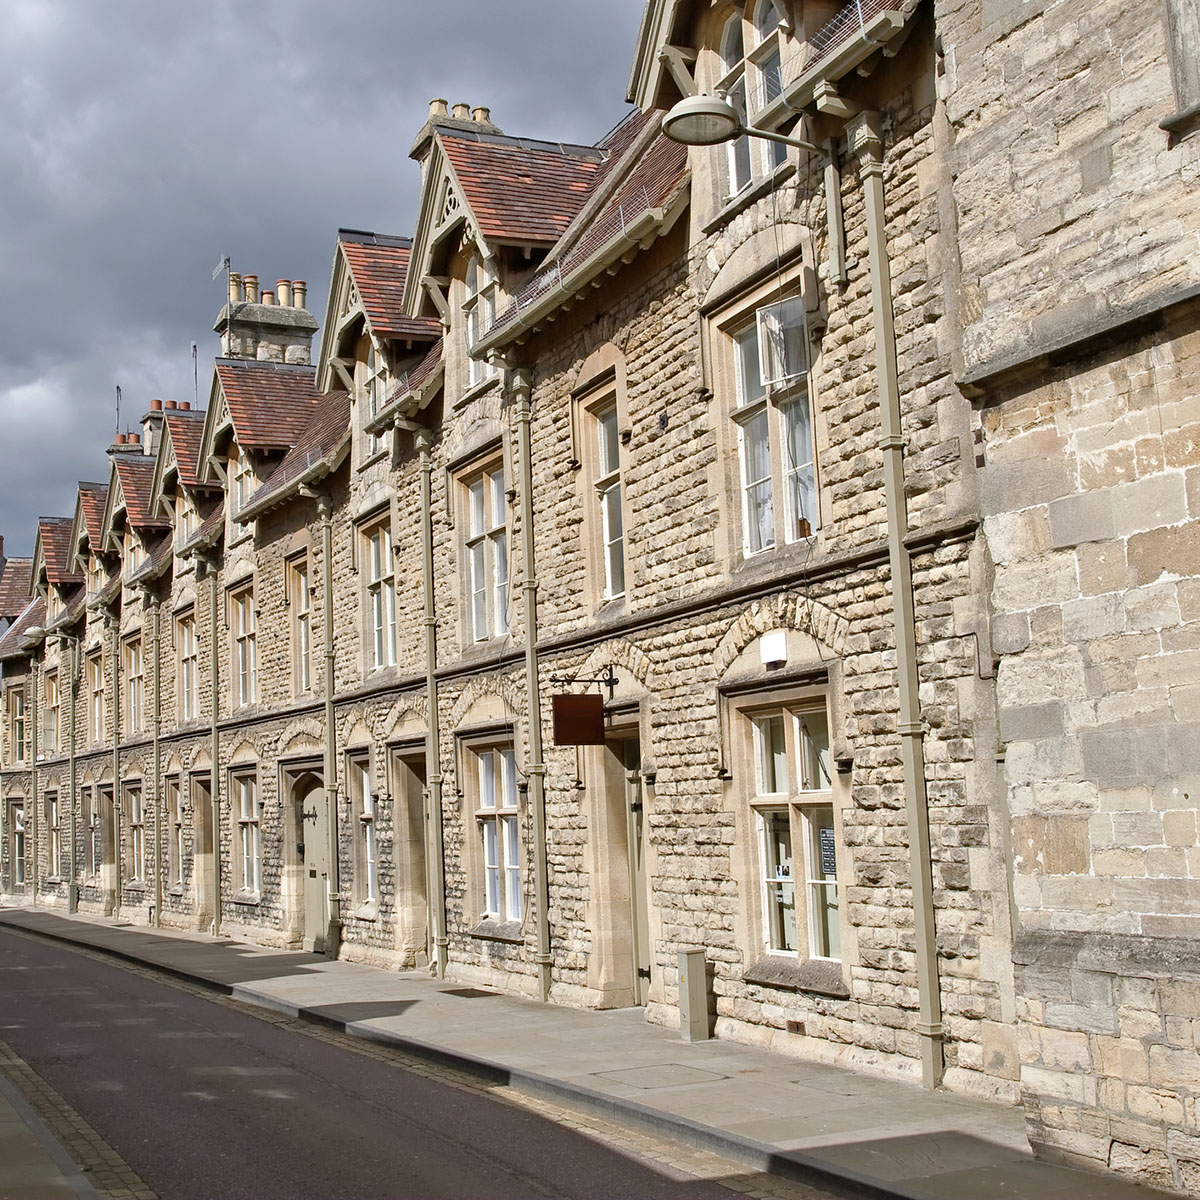 Cirencester, a historic Cotswolds town in England